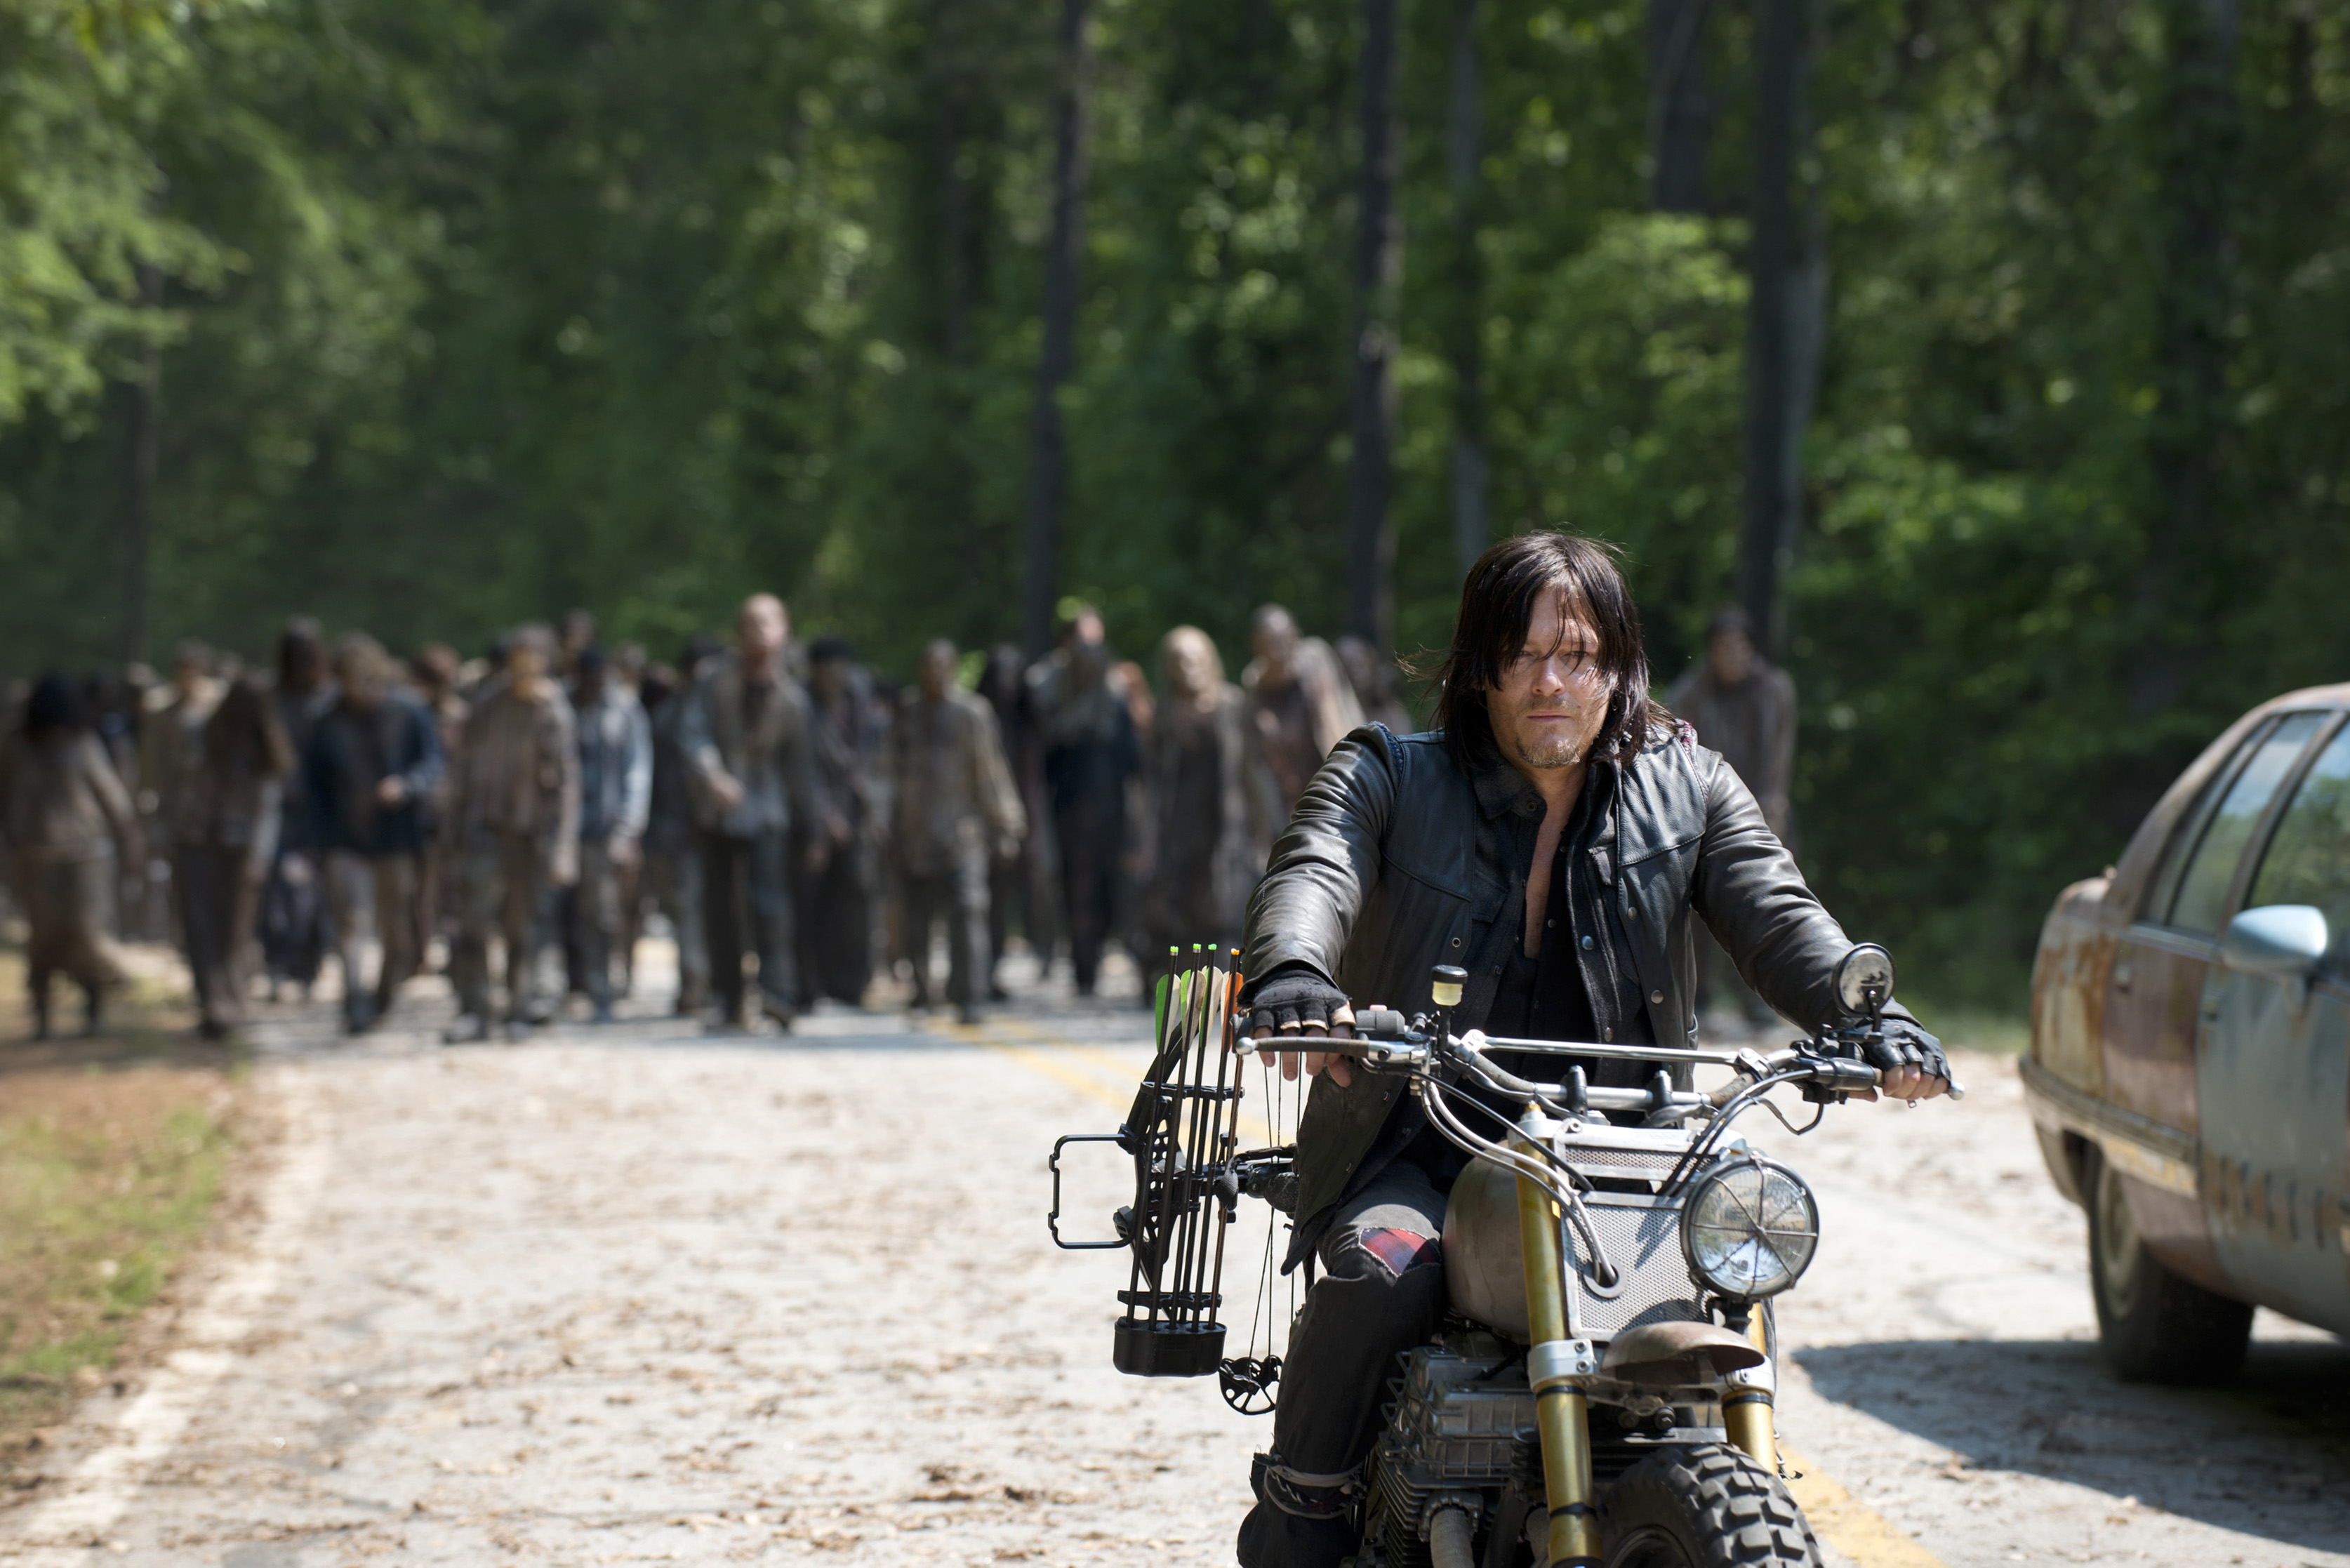 'Walking Dead' Season 6 Spoilers: Episode 6 Synopsis